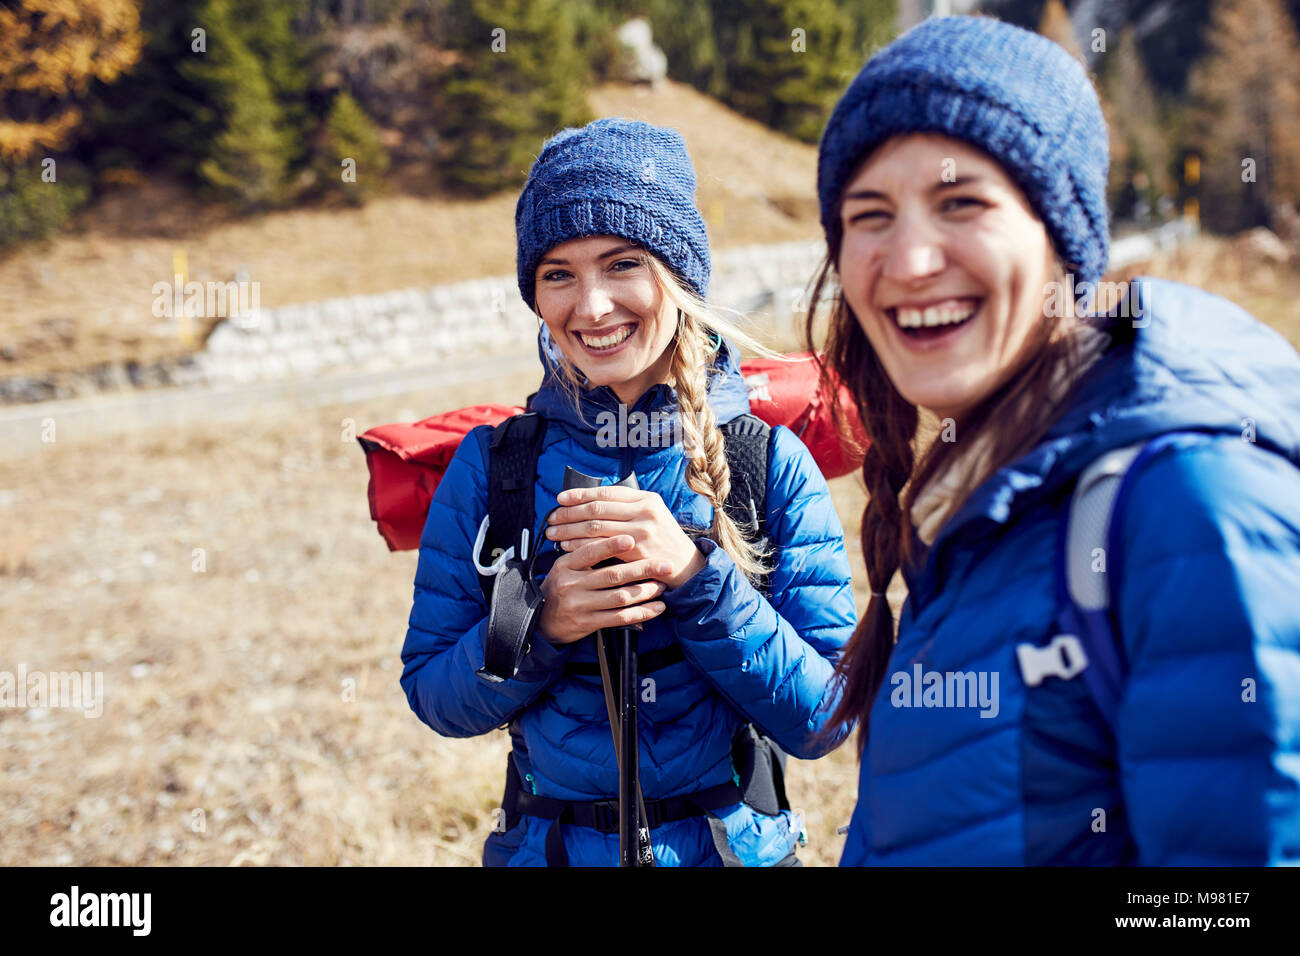 Two laughing young women hiking in the mountains - Stock Image